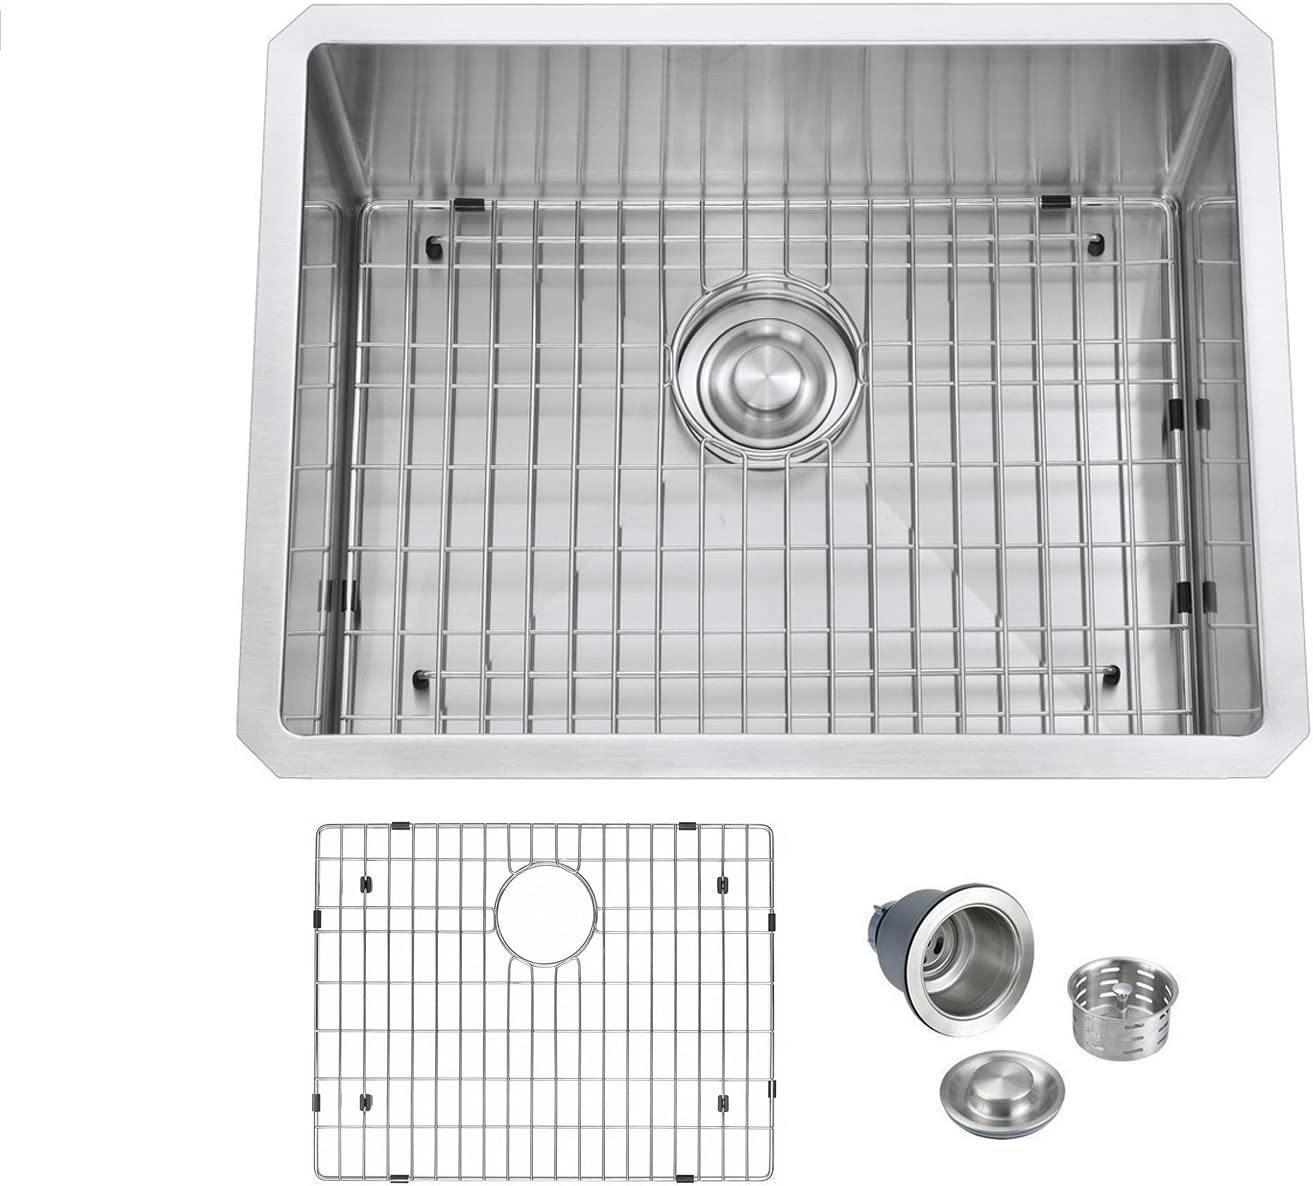 BILLION 23 x18 x10 Inch Undermount Single Bowl T304 Stainless Steel Kitchen Sink With Bottom Grid Drainer, 16 Gauge Thick With 10 Inch Deep Bowl